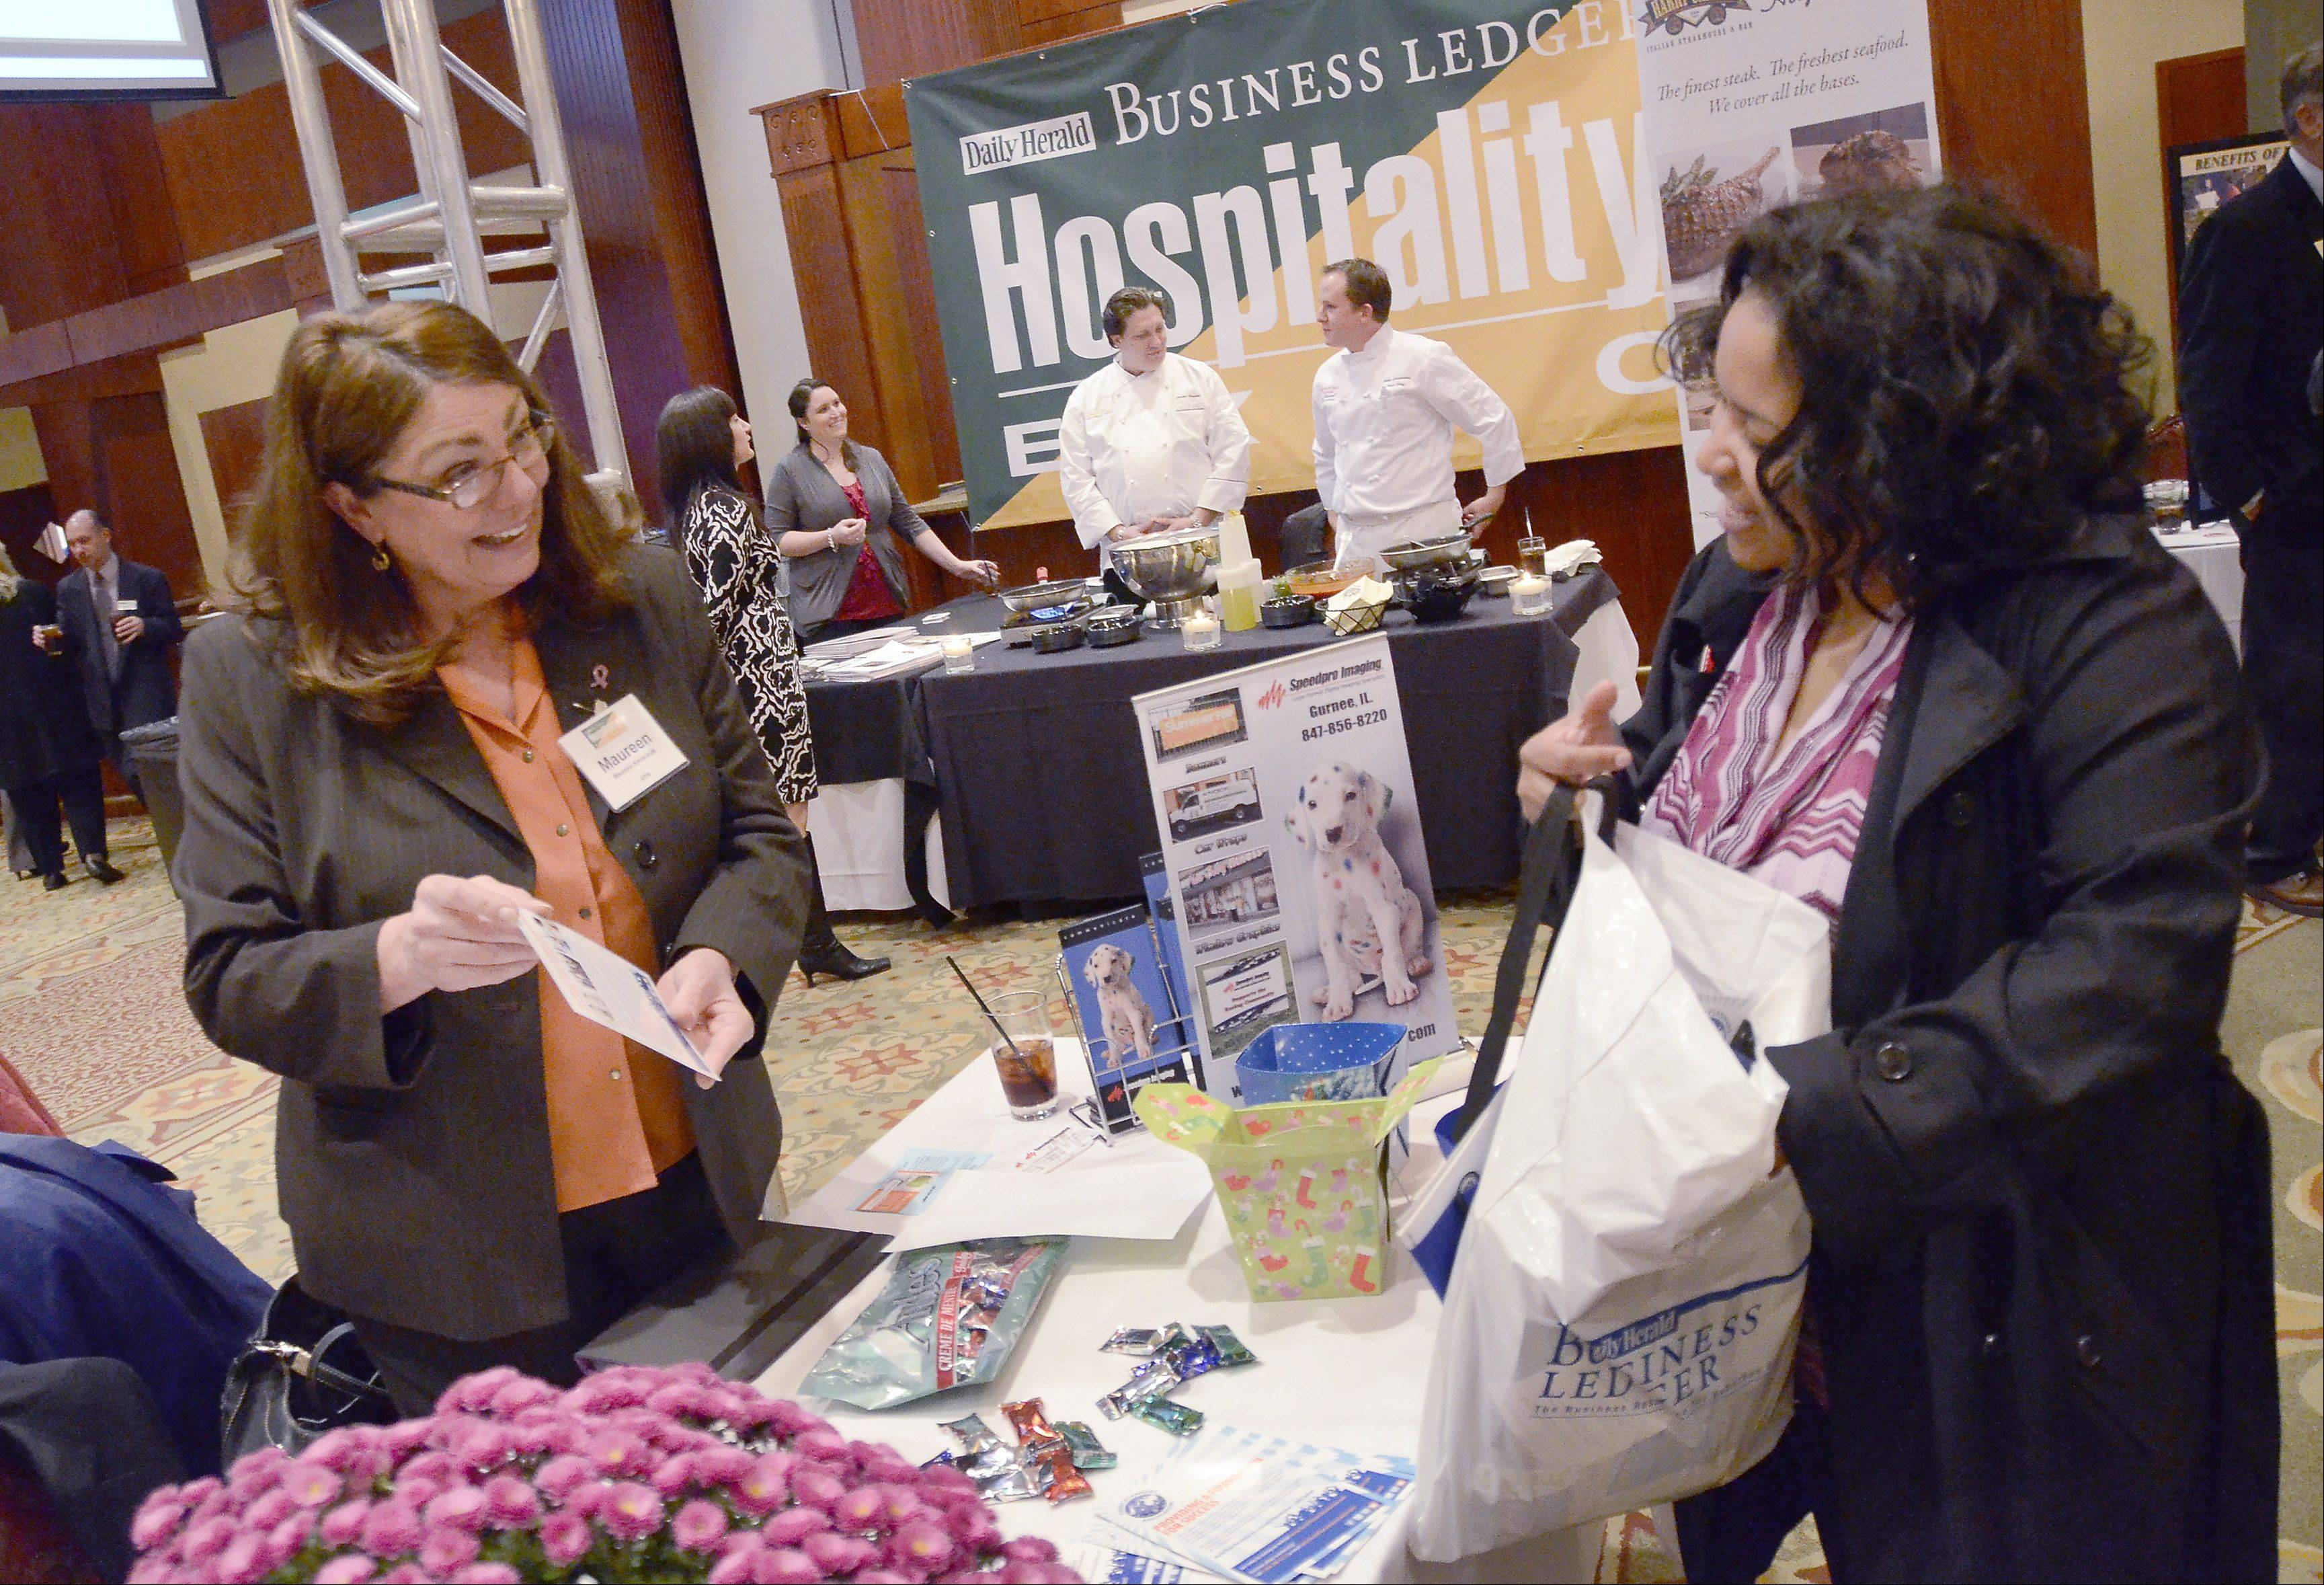 Bill Zars/bzars@dailyherald.comMaureen Kmieciak, left, with Speedpro Imaging of Gurnee and event coordinator Rashaan Tobin with Events of Radiance chat at the Daily Herald Business Ledger Northwest Hospitality Expo at the Meadows Club in Rolling Meadows.